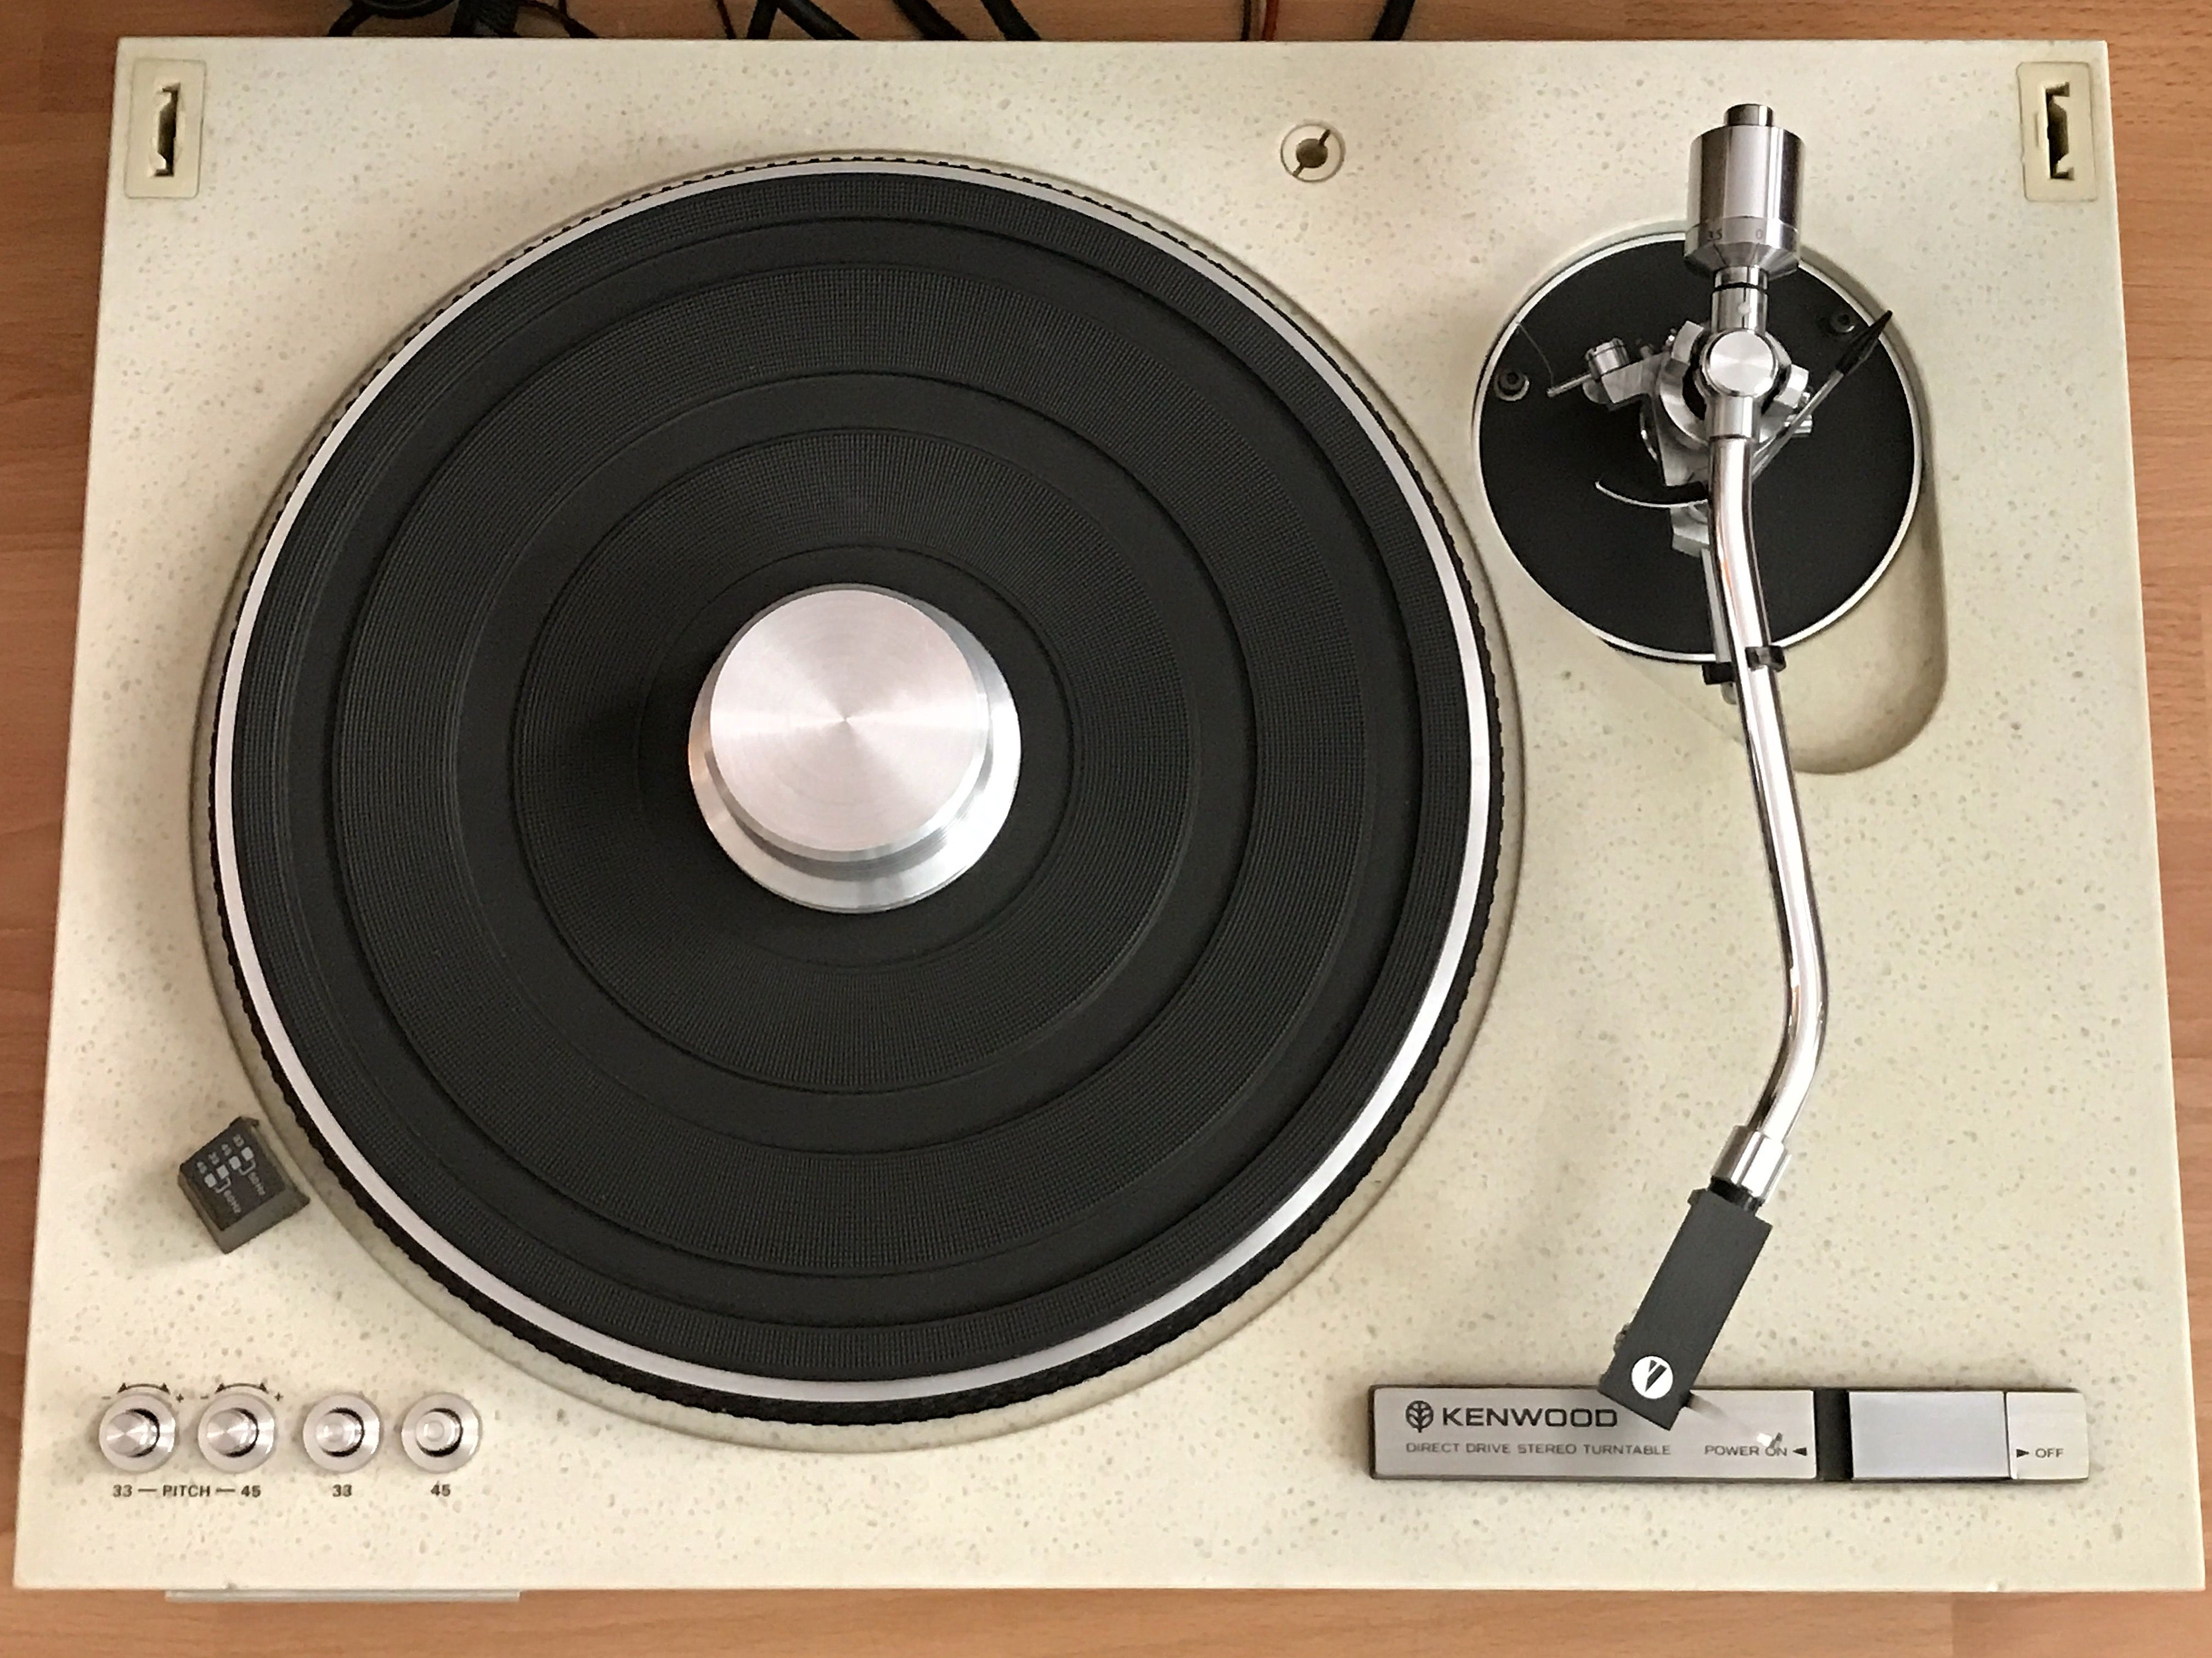 Record Player Kenwood Kd 550 Turntable